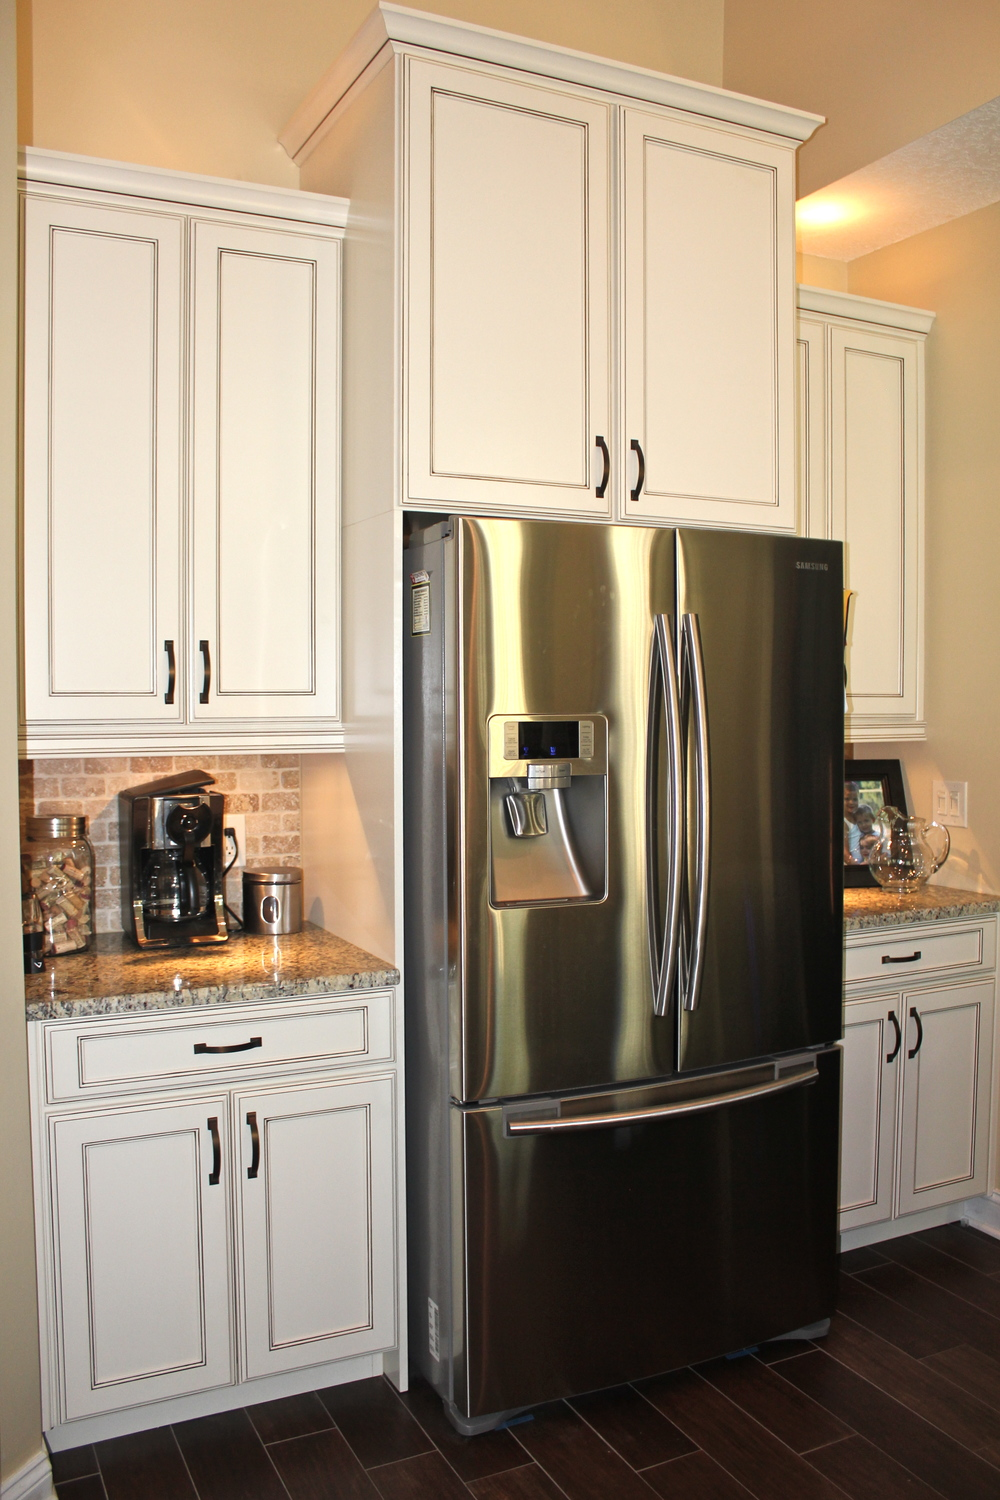 Kabinart Kitchen Cabinetry